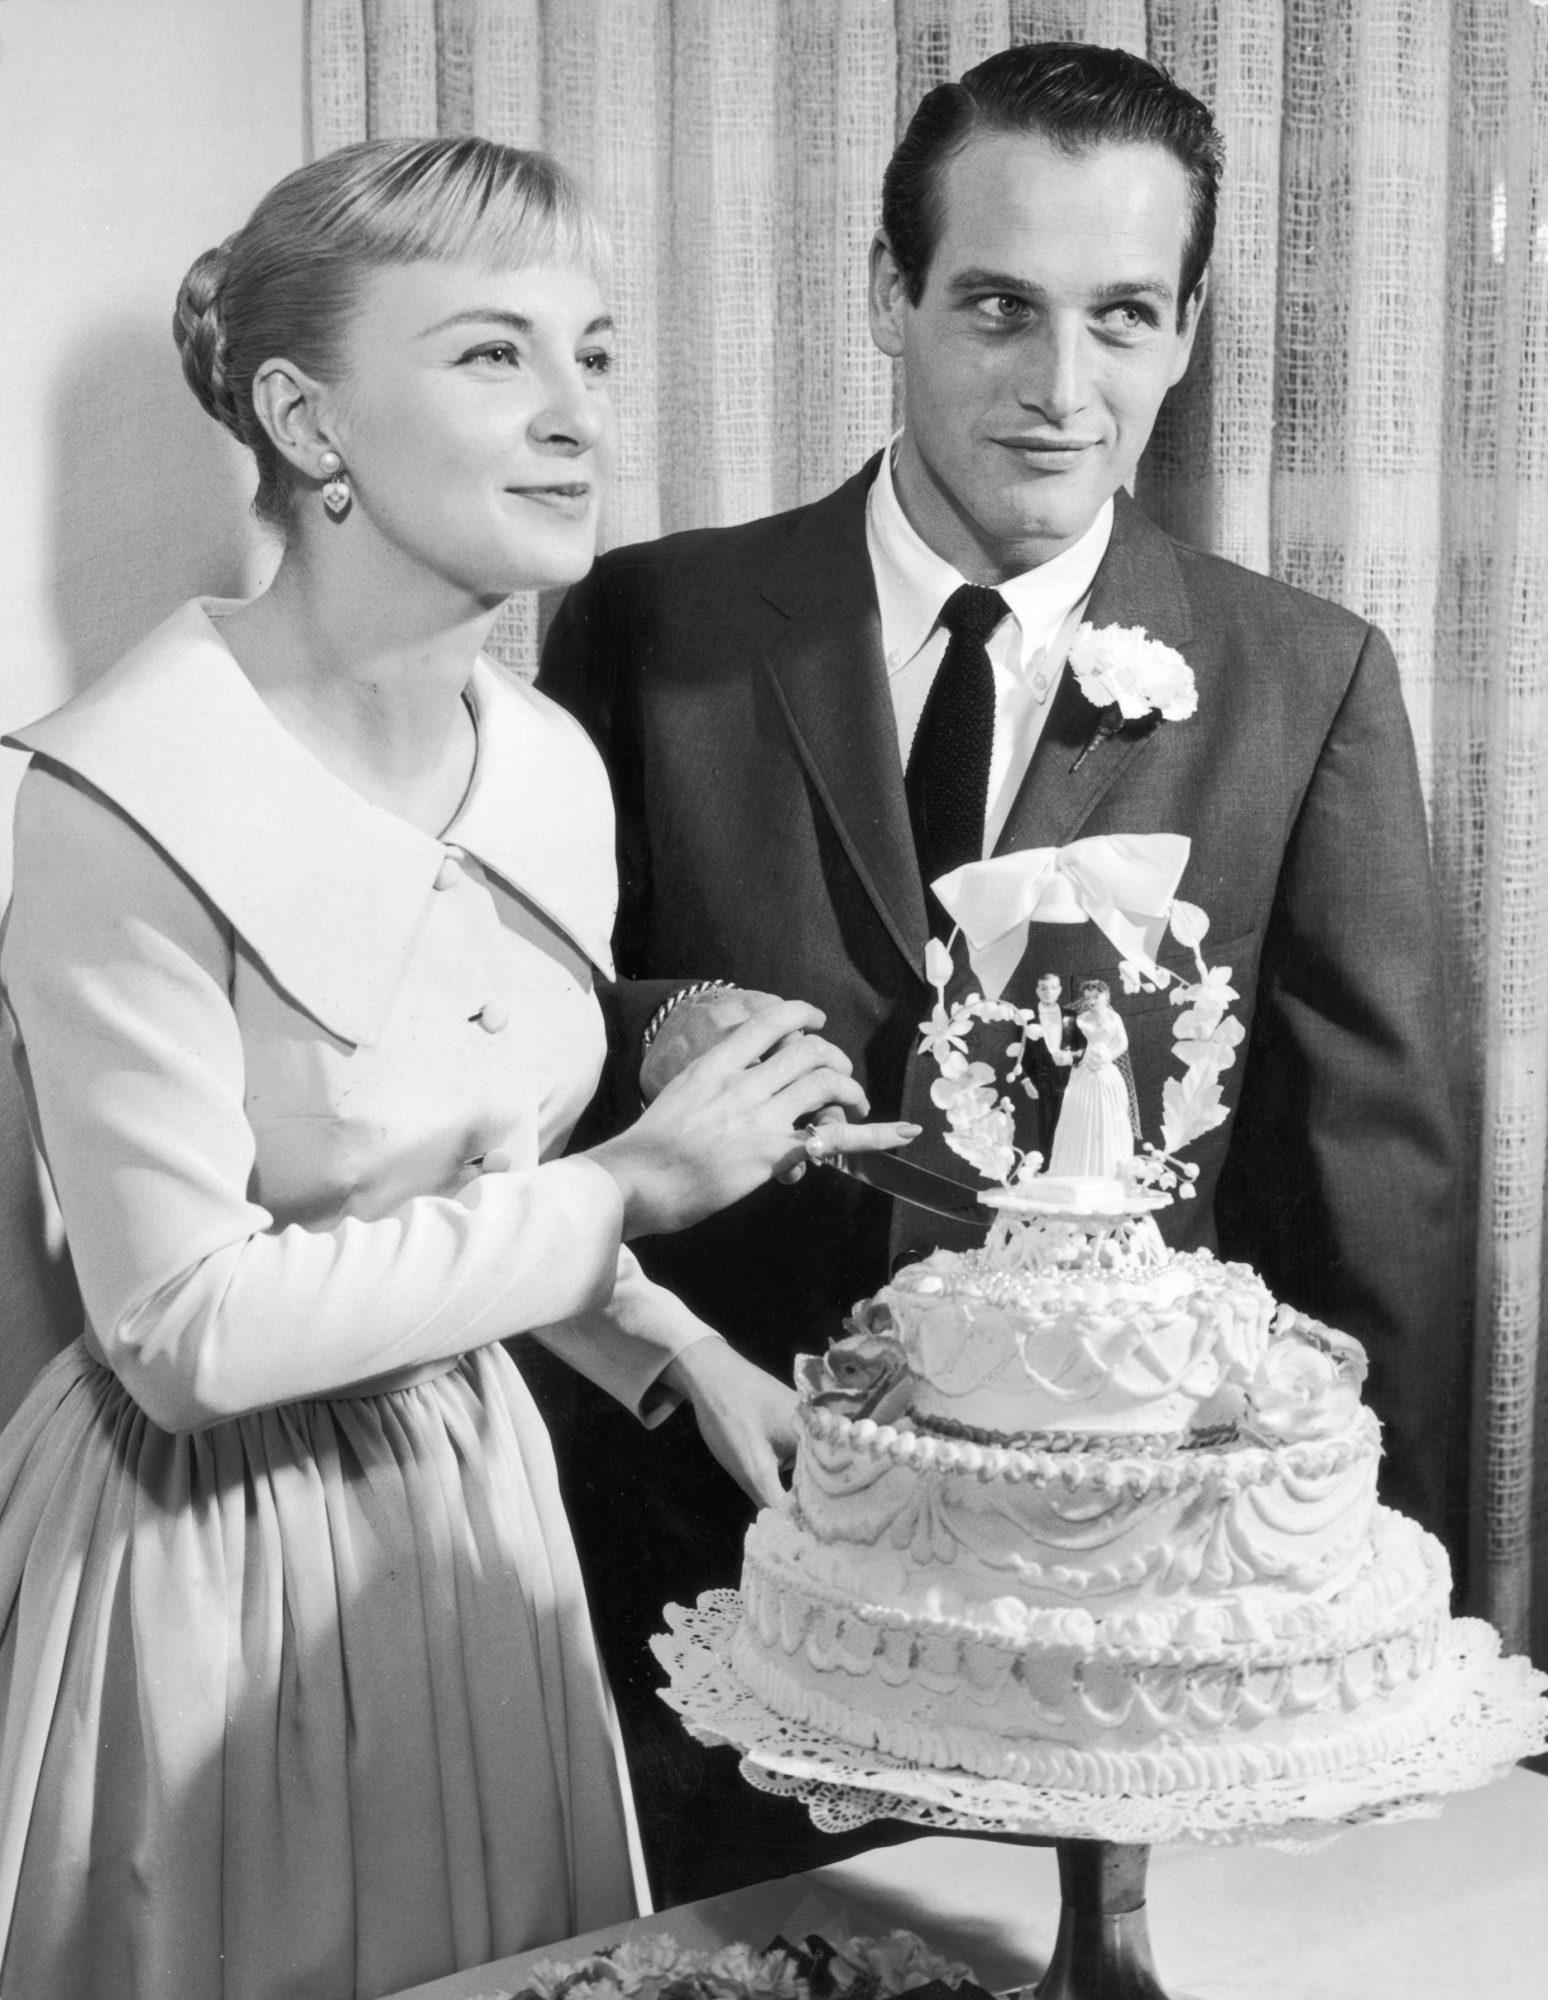 Paul Newman and Joanne Woodward Wedding